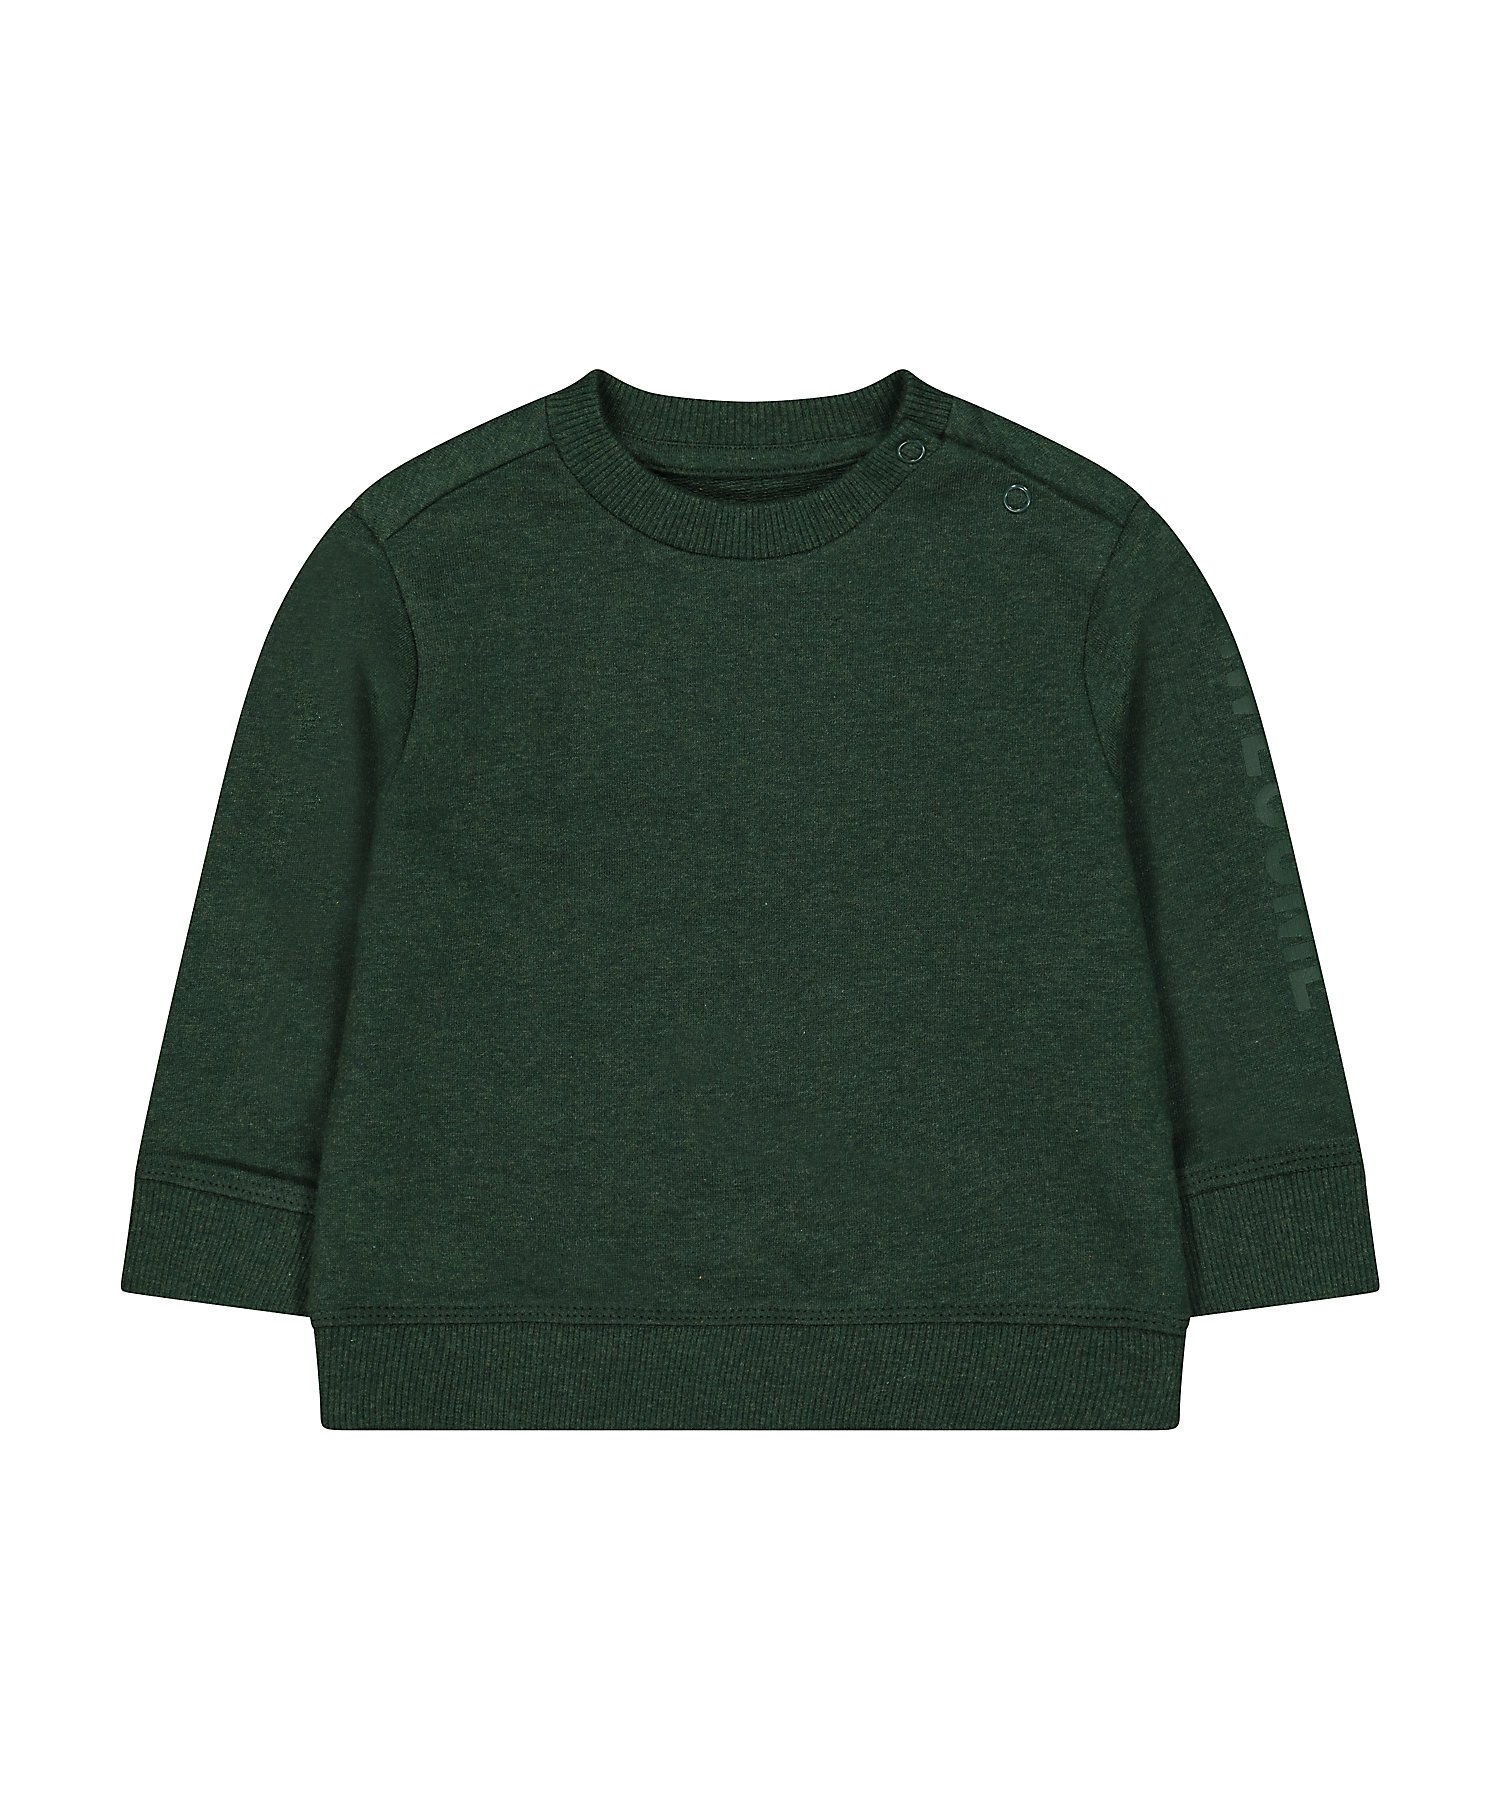 Mothercare | Dark Green Awesome Sweat Top